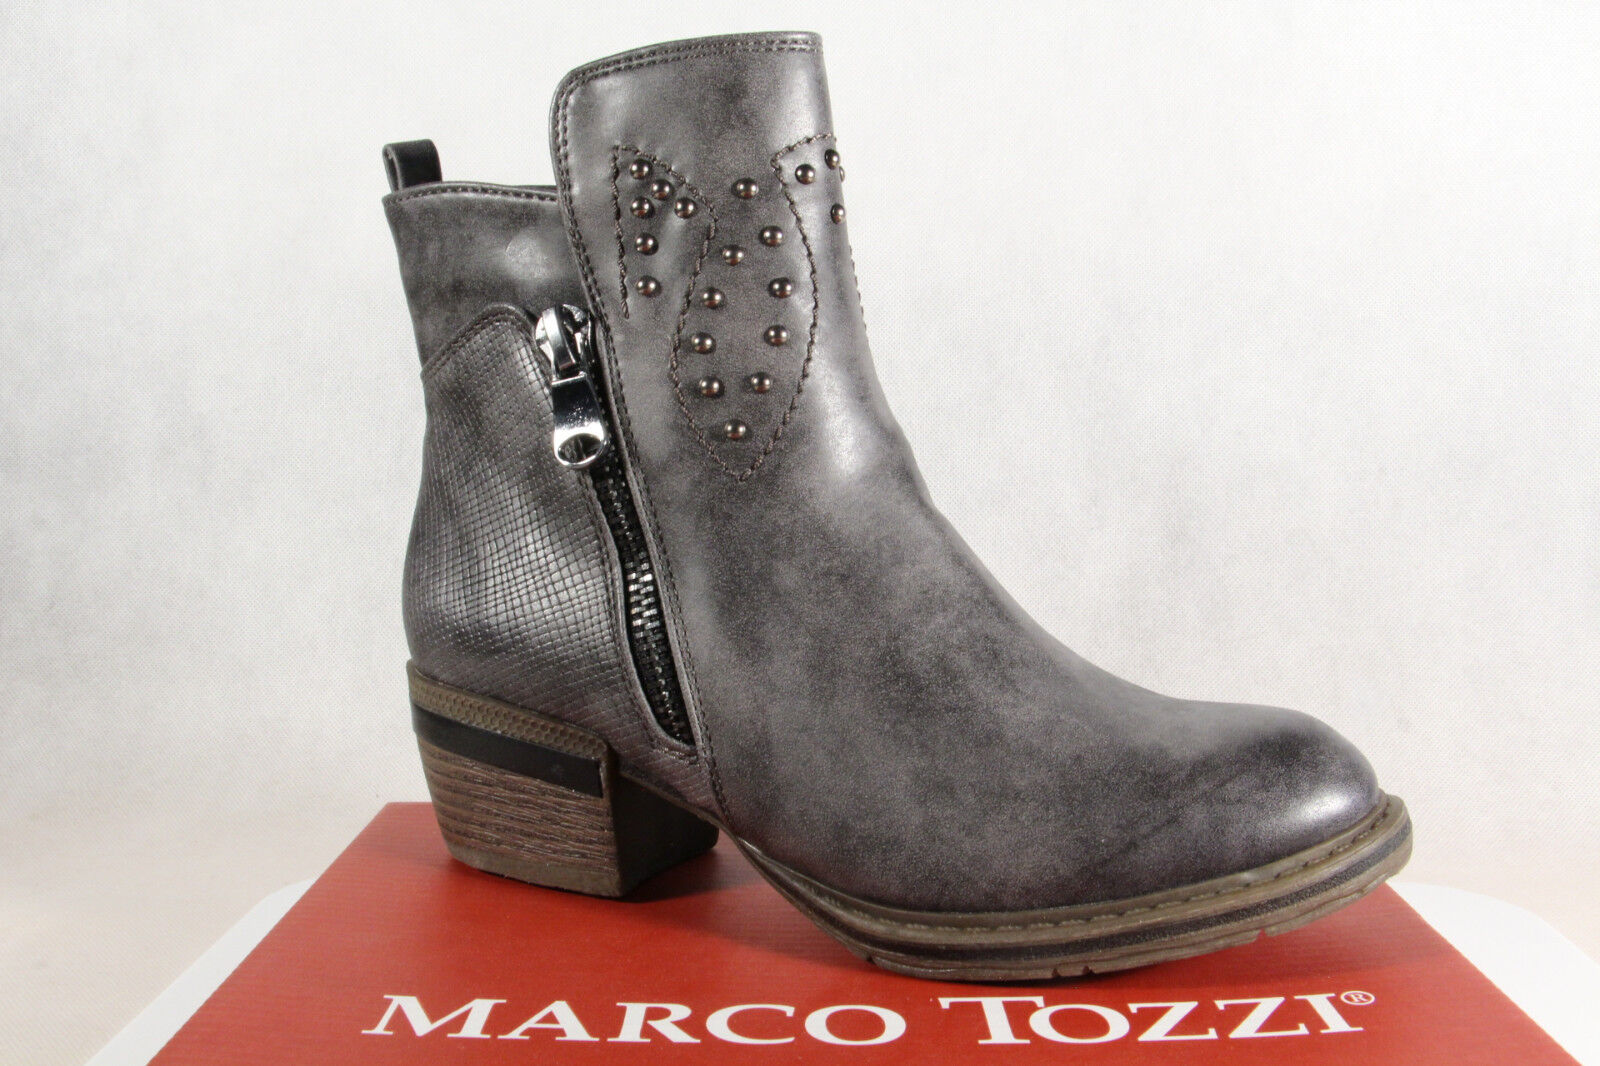 MARCO TOZZI Boots, Ankle Boots, Grey, Lightly Lined, 25361 NEW